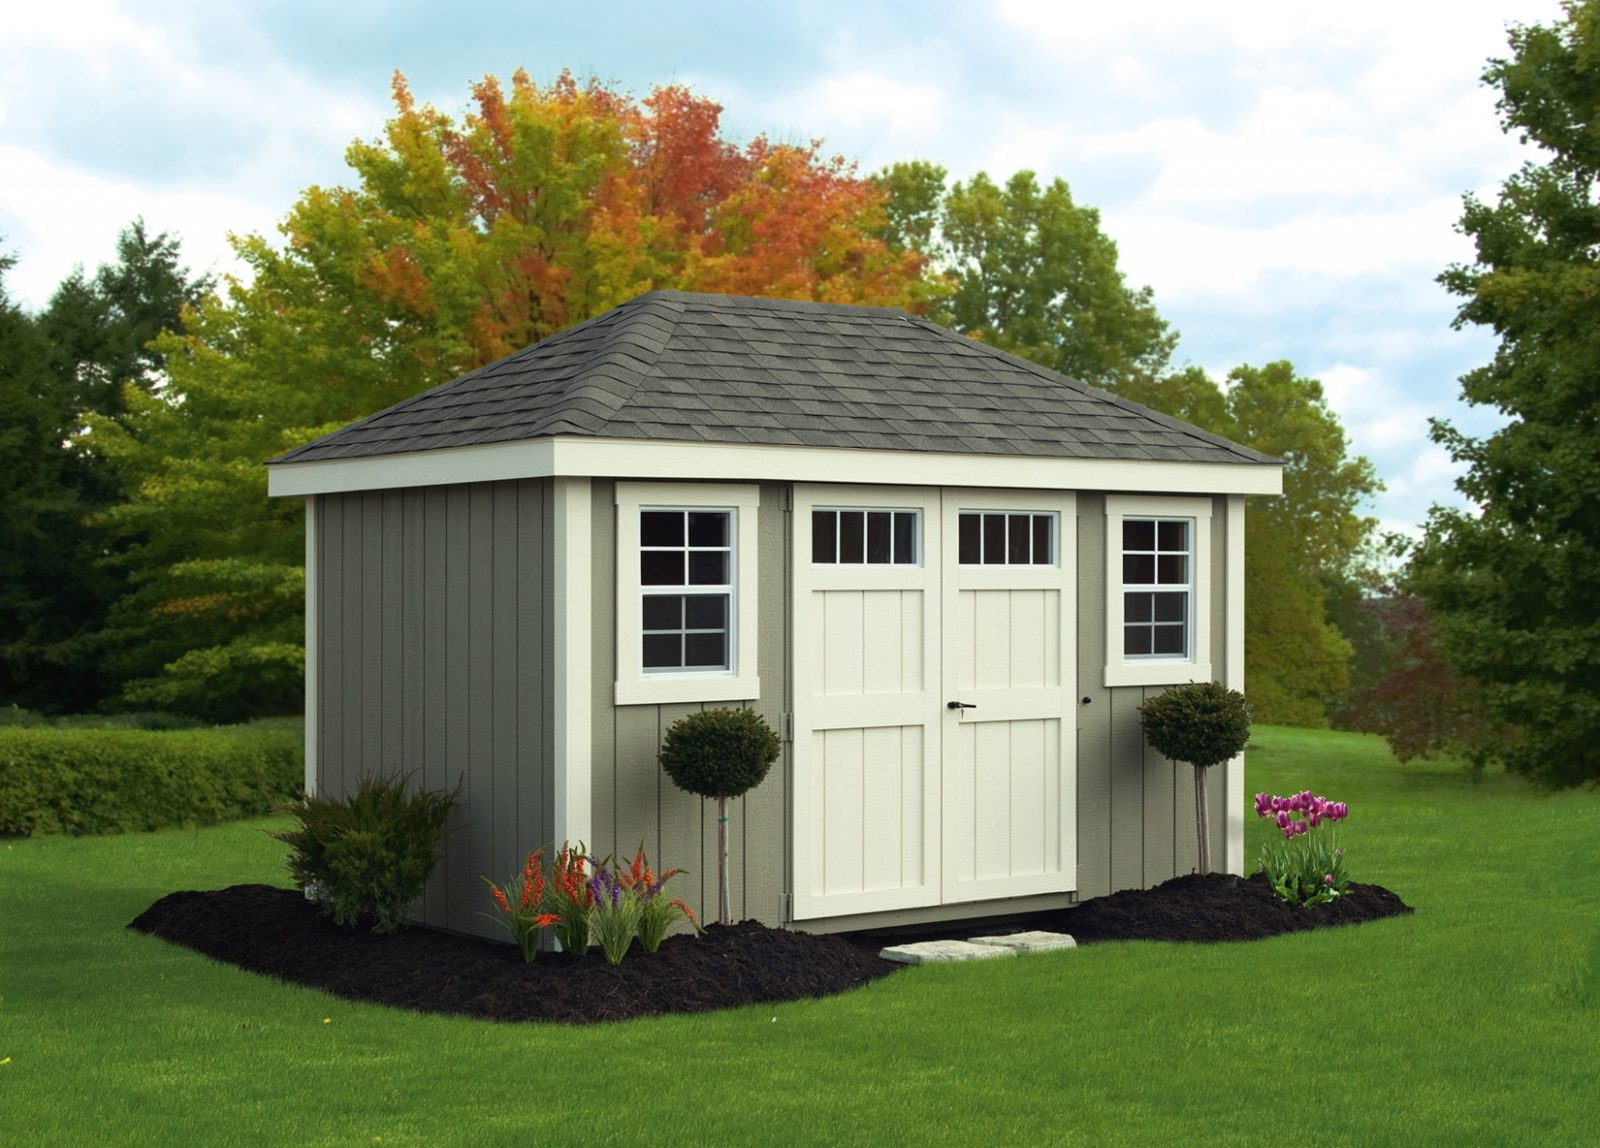 For Sale Outdoor Shed In Minneapolis Mn And Hayward